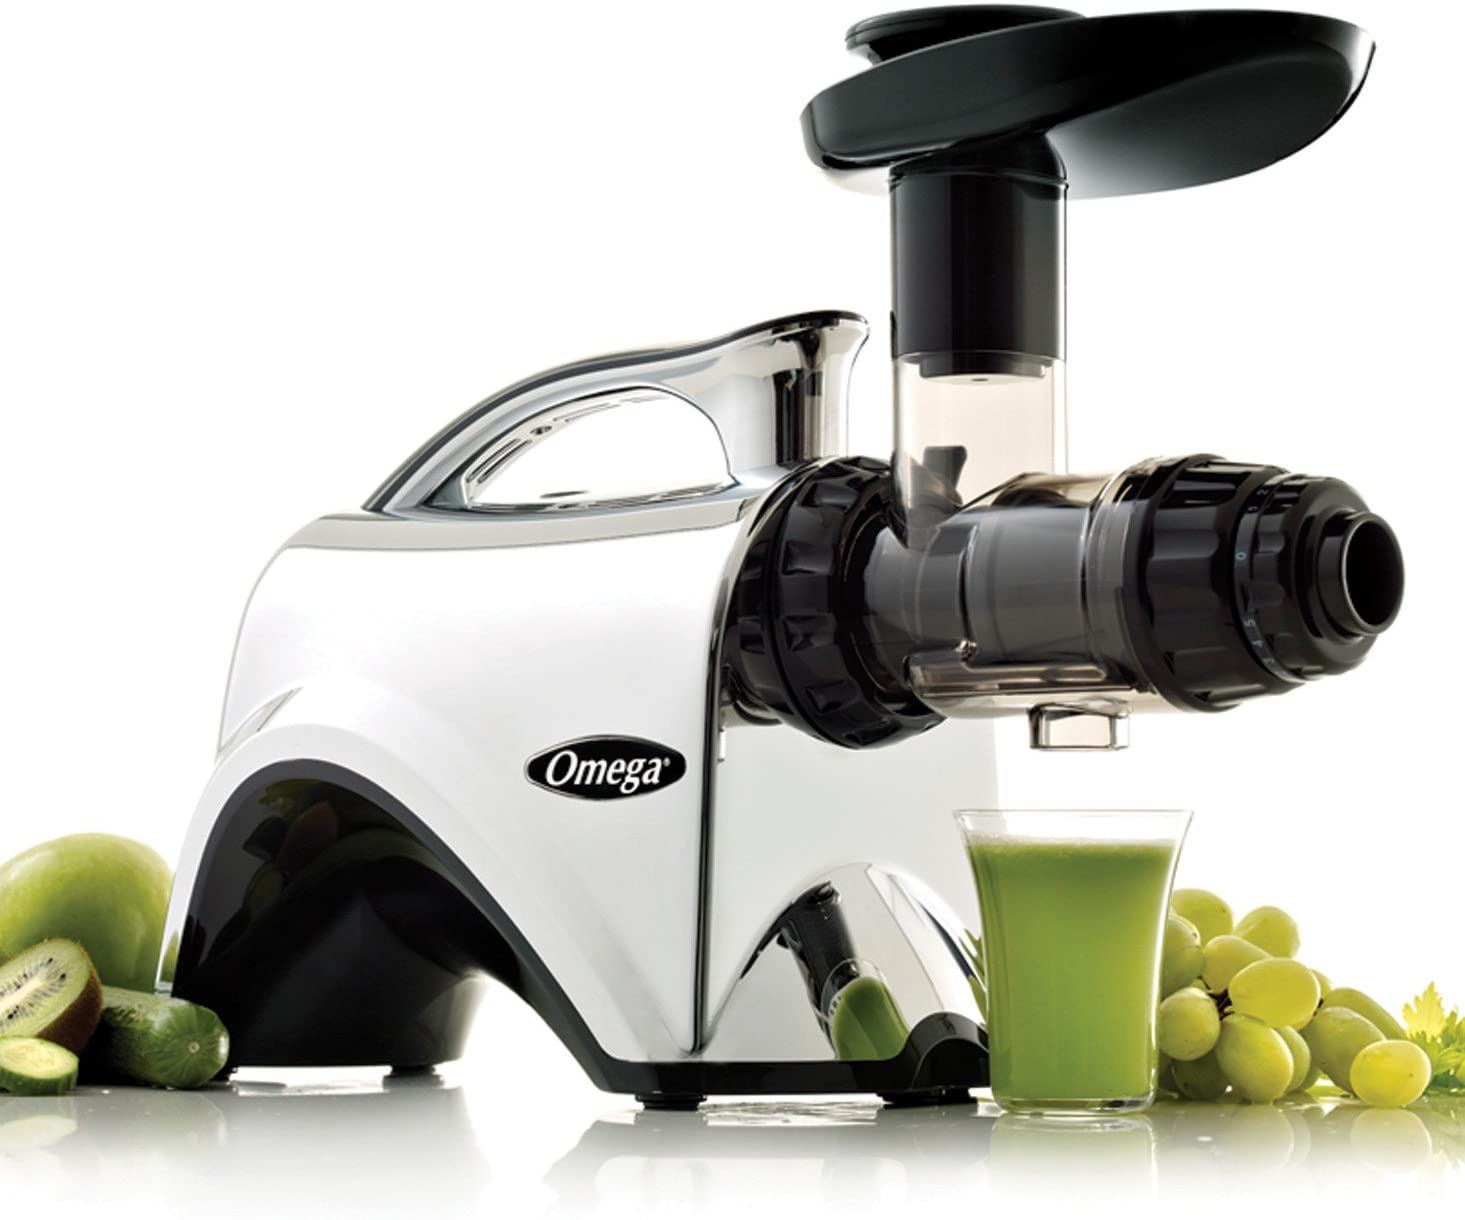 Omega Juicers NC900HDC Juicer Extractor